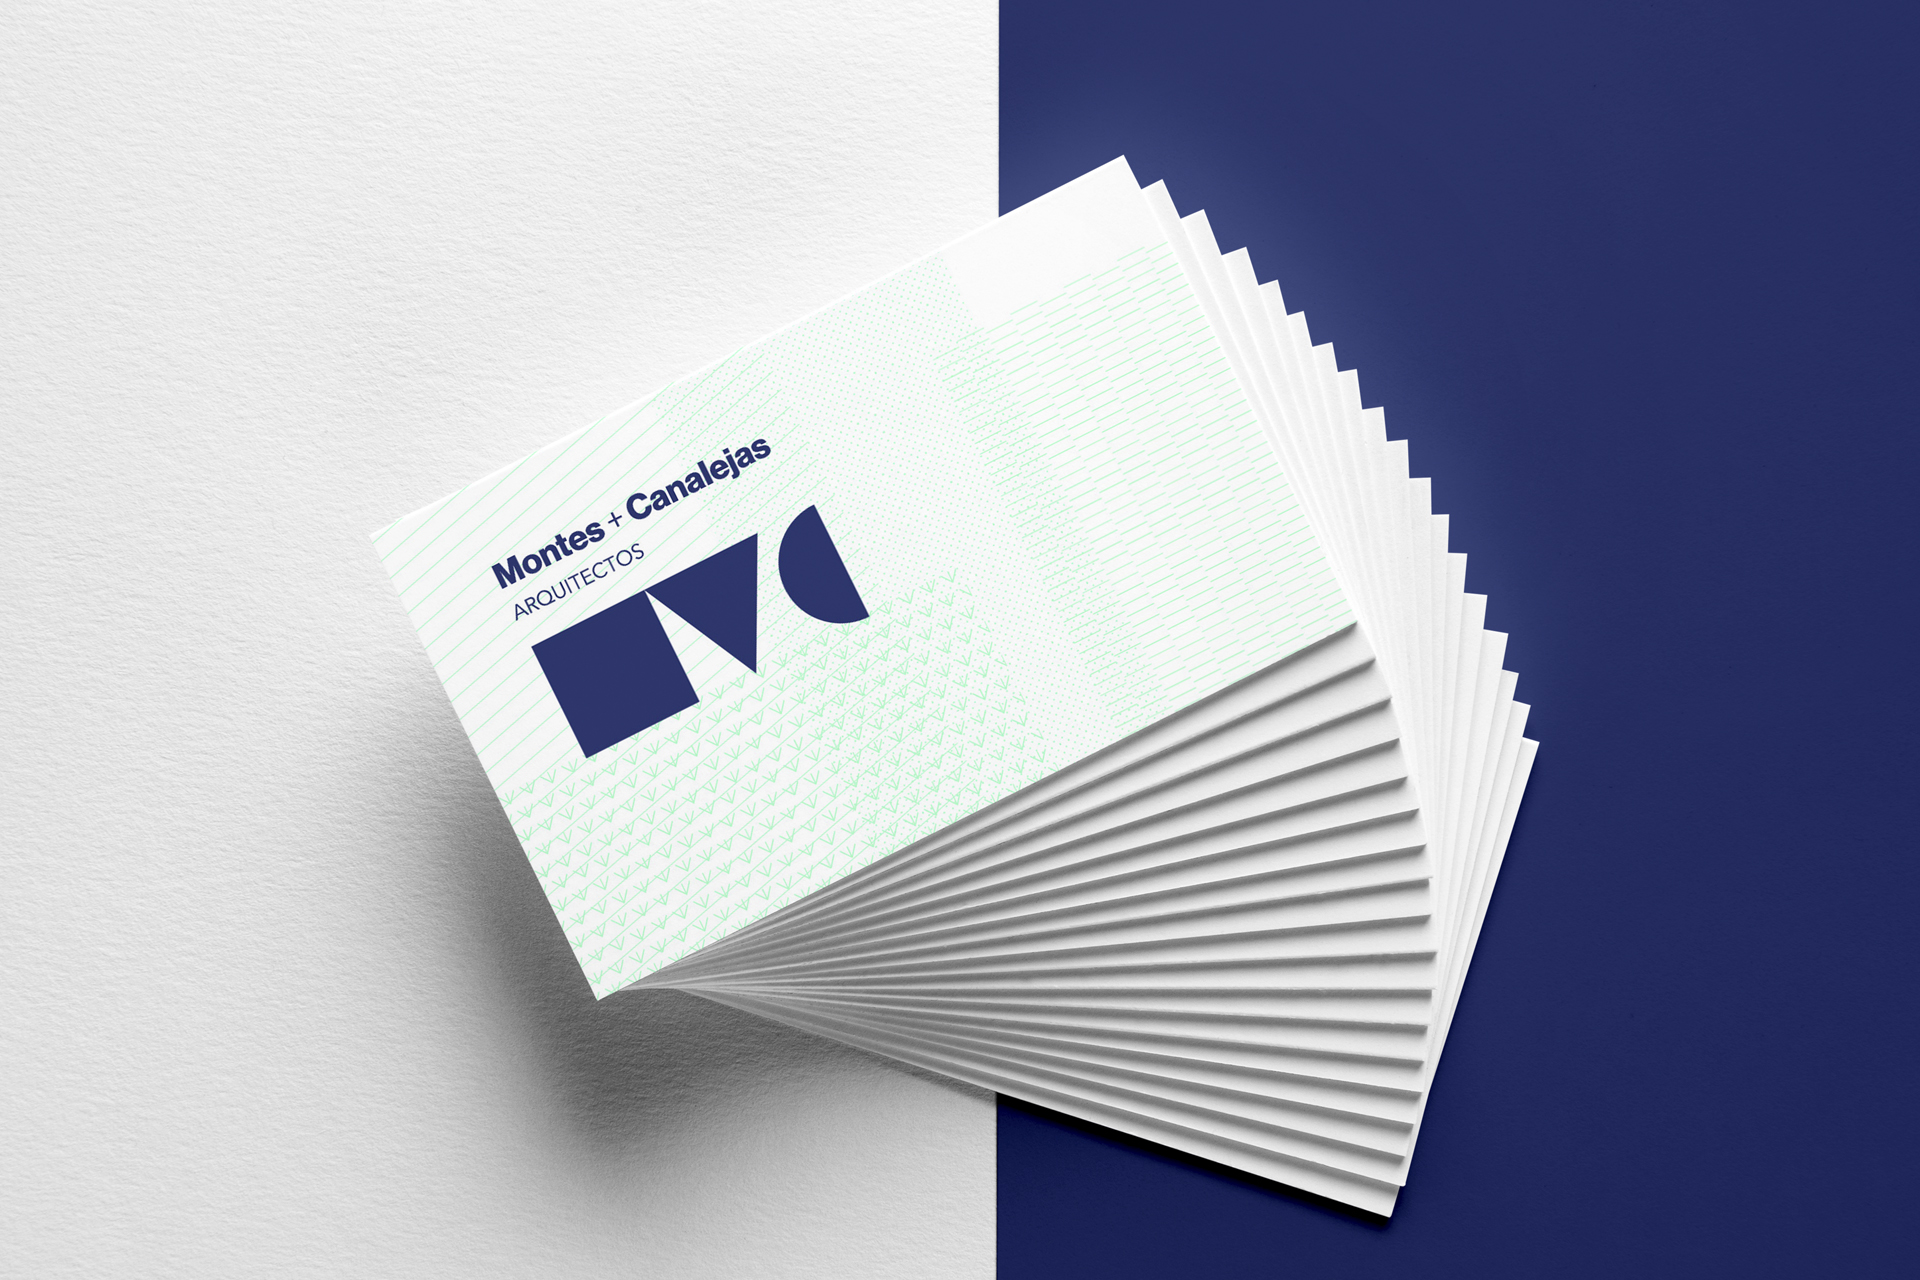 MontesyCanalejas - Corporate Identity -